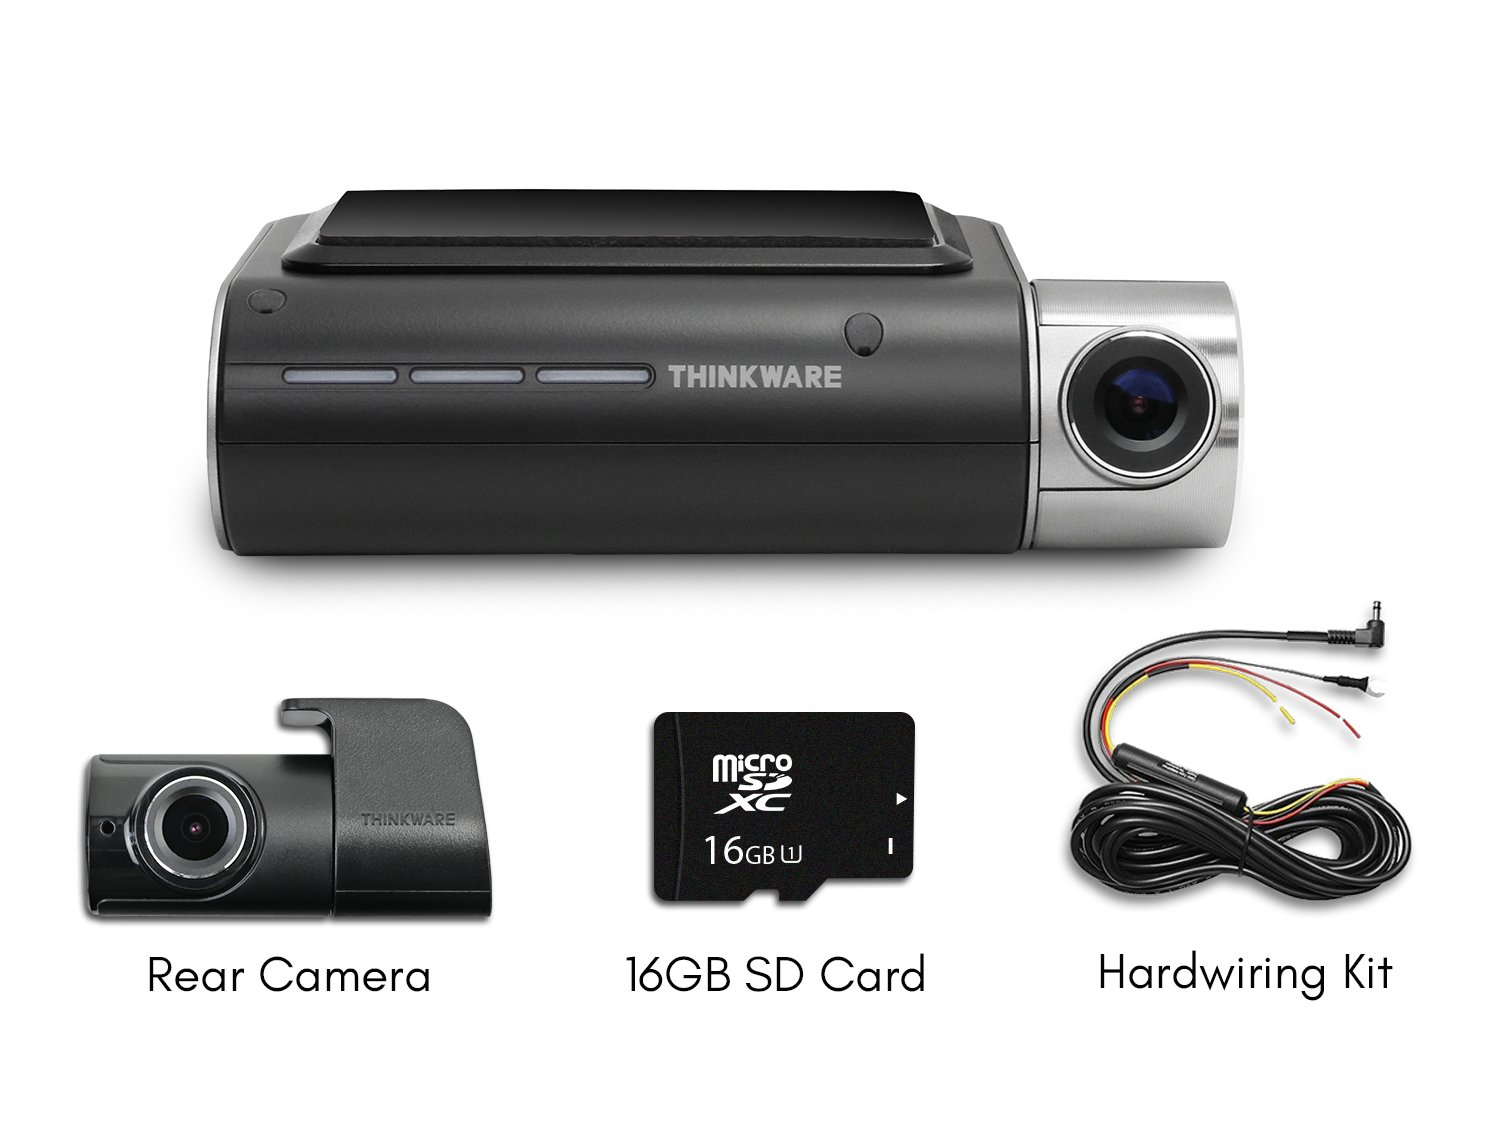 Thinkware F800 Exclusive 2-Channel Bundle 1080P FHD WiFi Rearview Camera 16GB and Hardwiring Kit Included